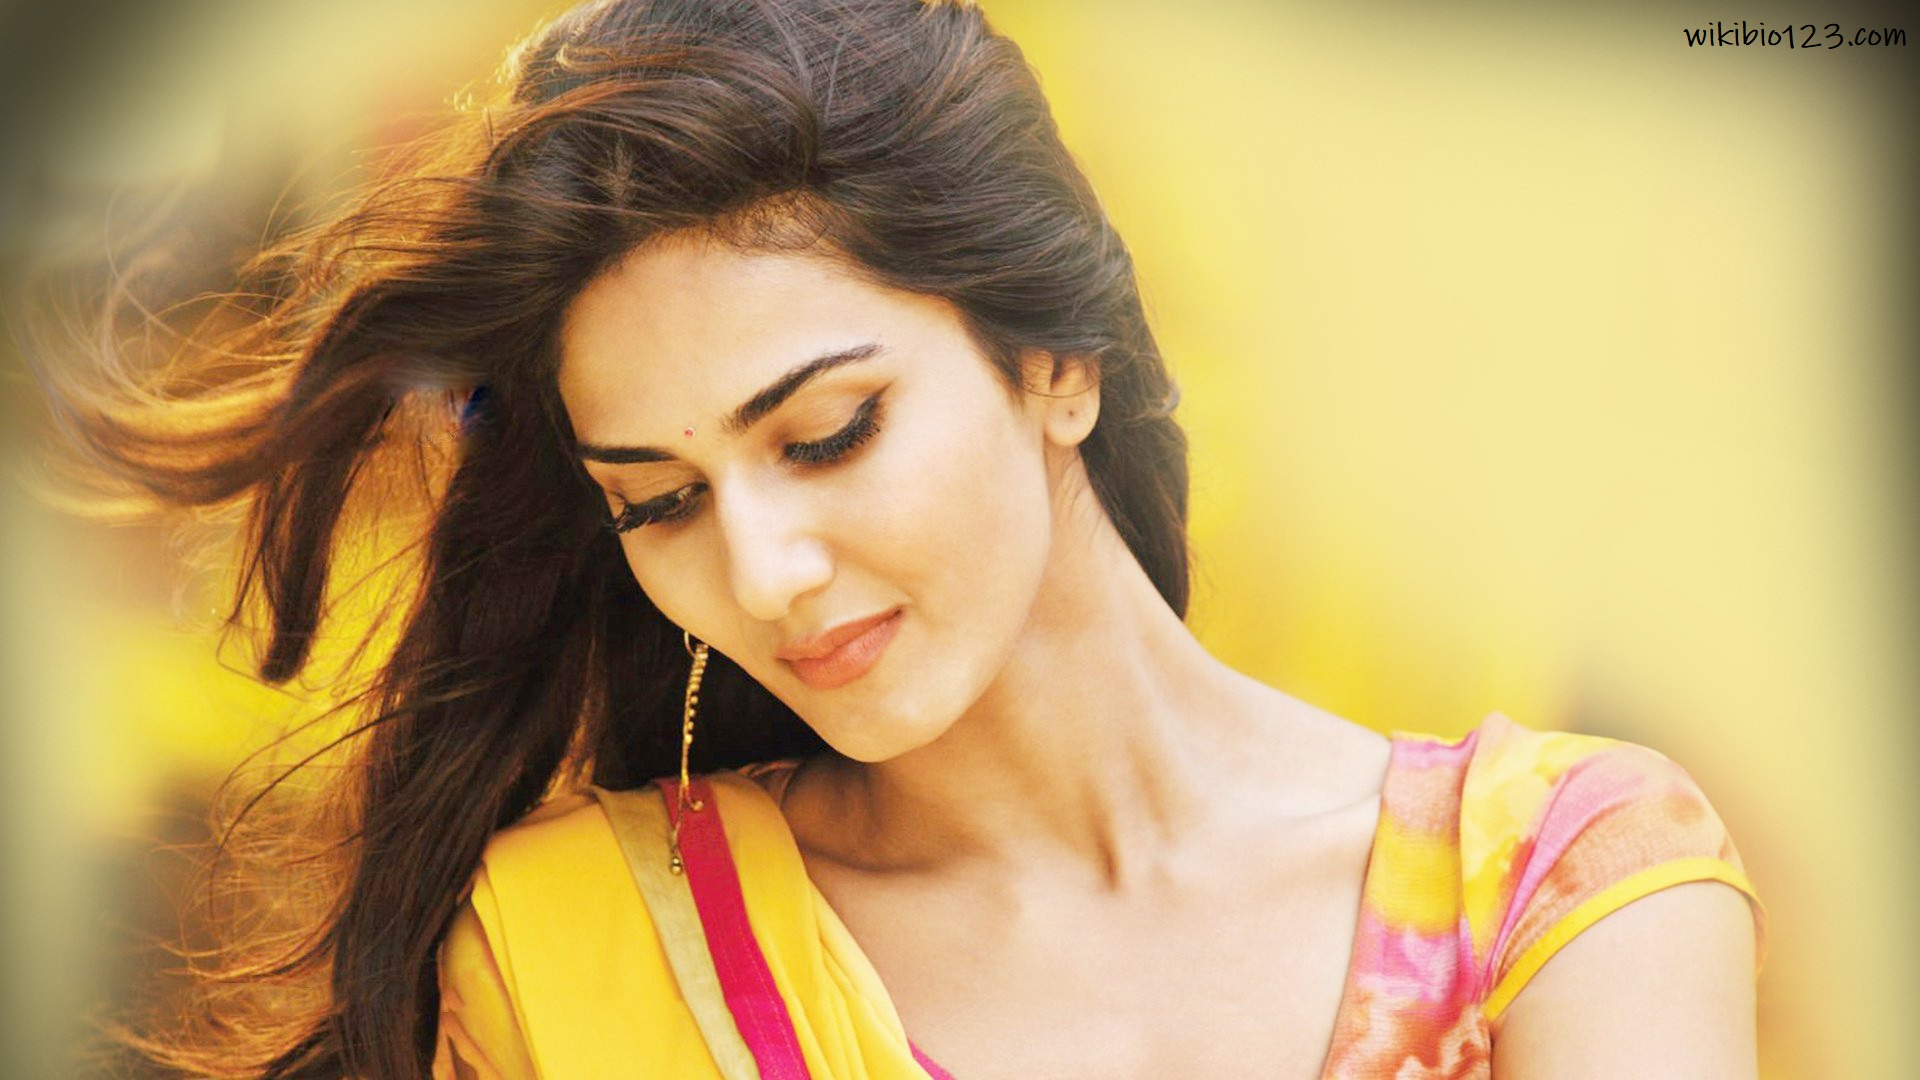 Vaani Kapoor wiki Bio Age Fiagure size Height HD Images Wallpapers Download